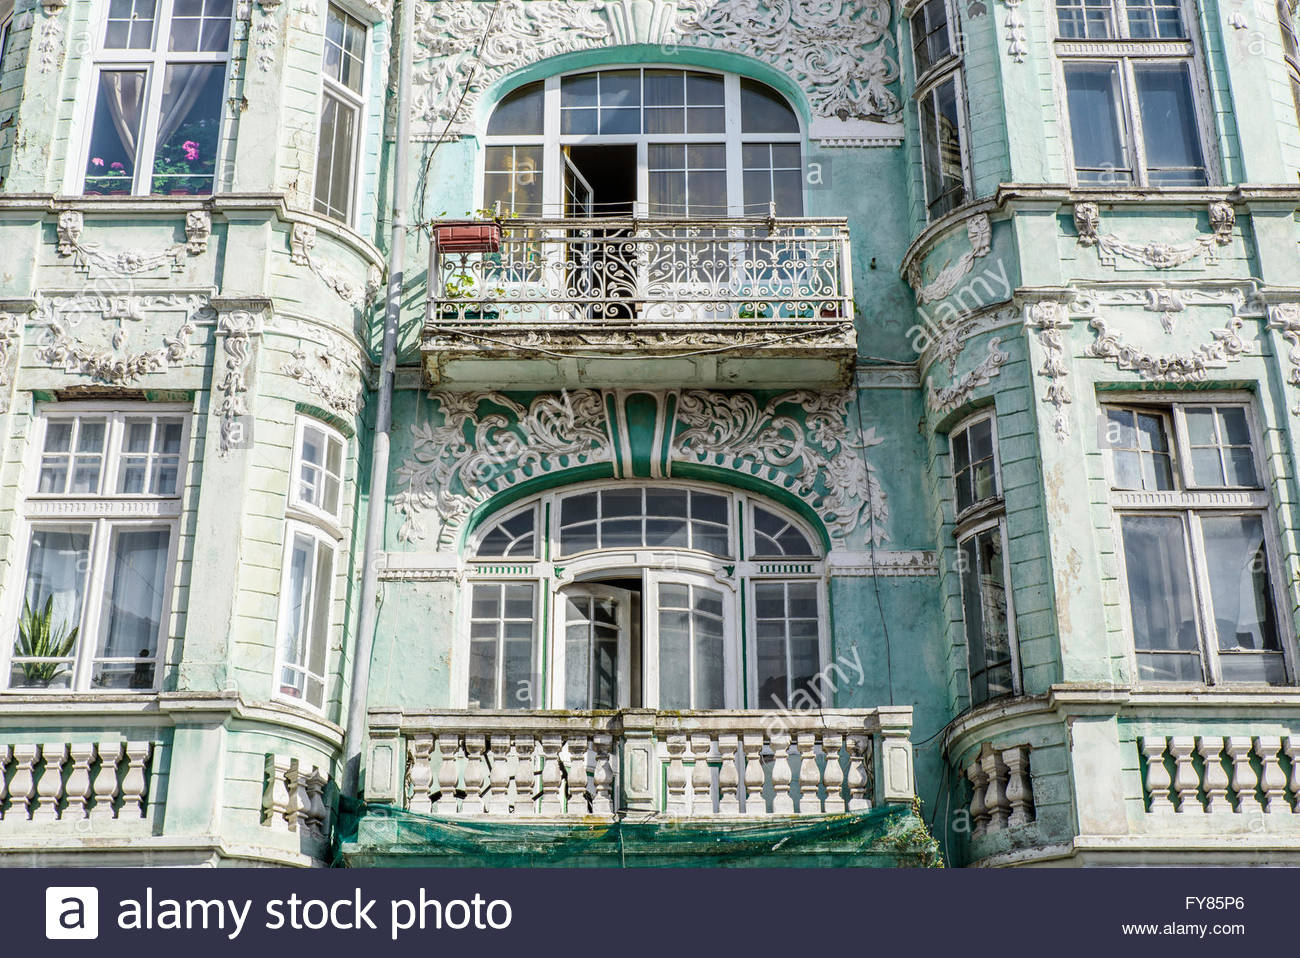 Superior Intricate And Elaborate Decoration On The Facade Of An Old House   Classic  Example Of European Architecture